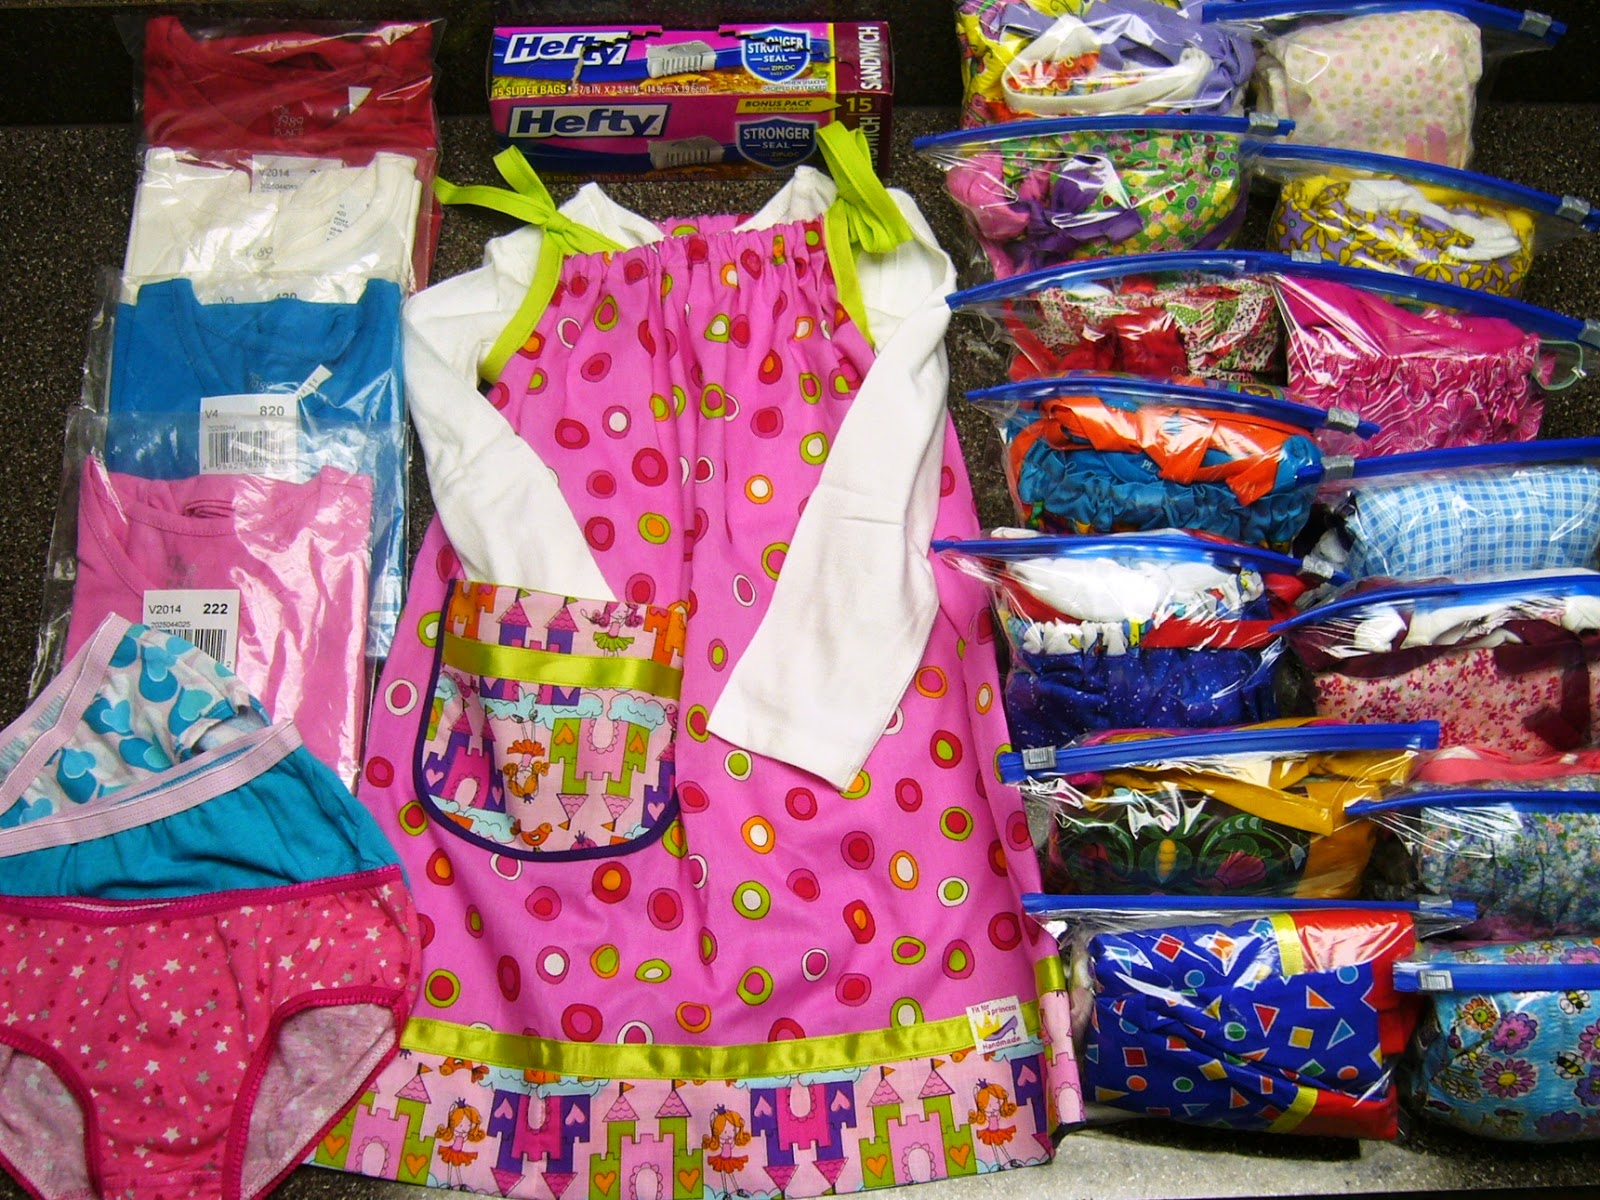 Pillowcase dresses, panties and tops for Operation Christmas Child shoeboxes.